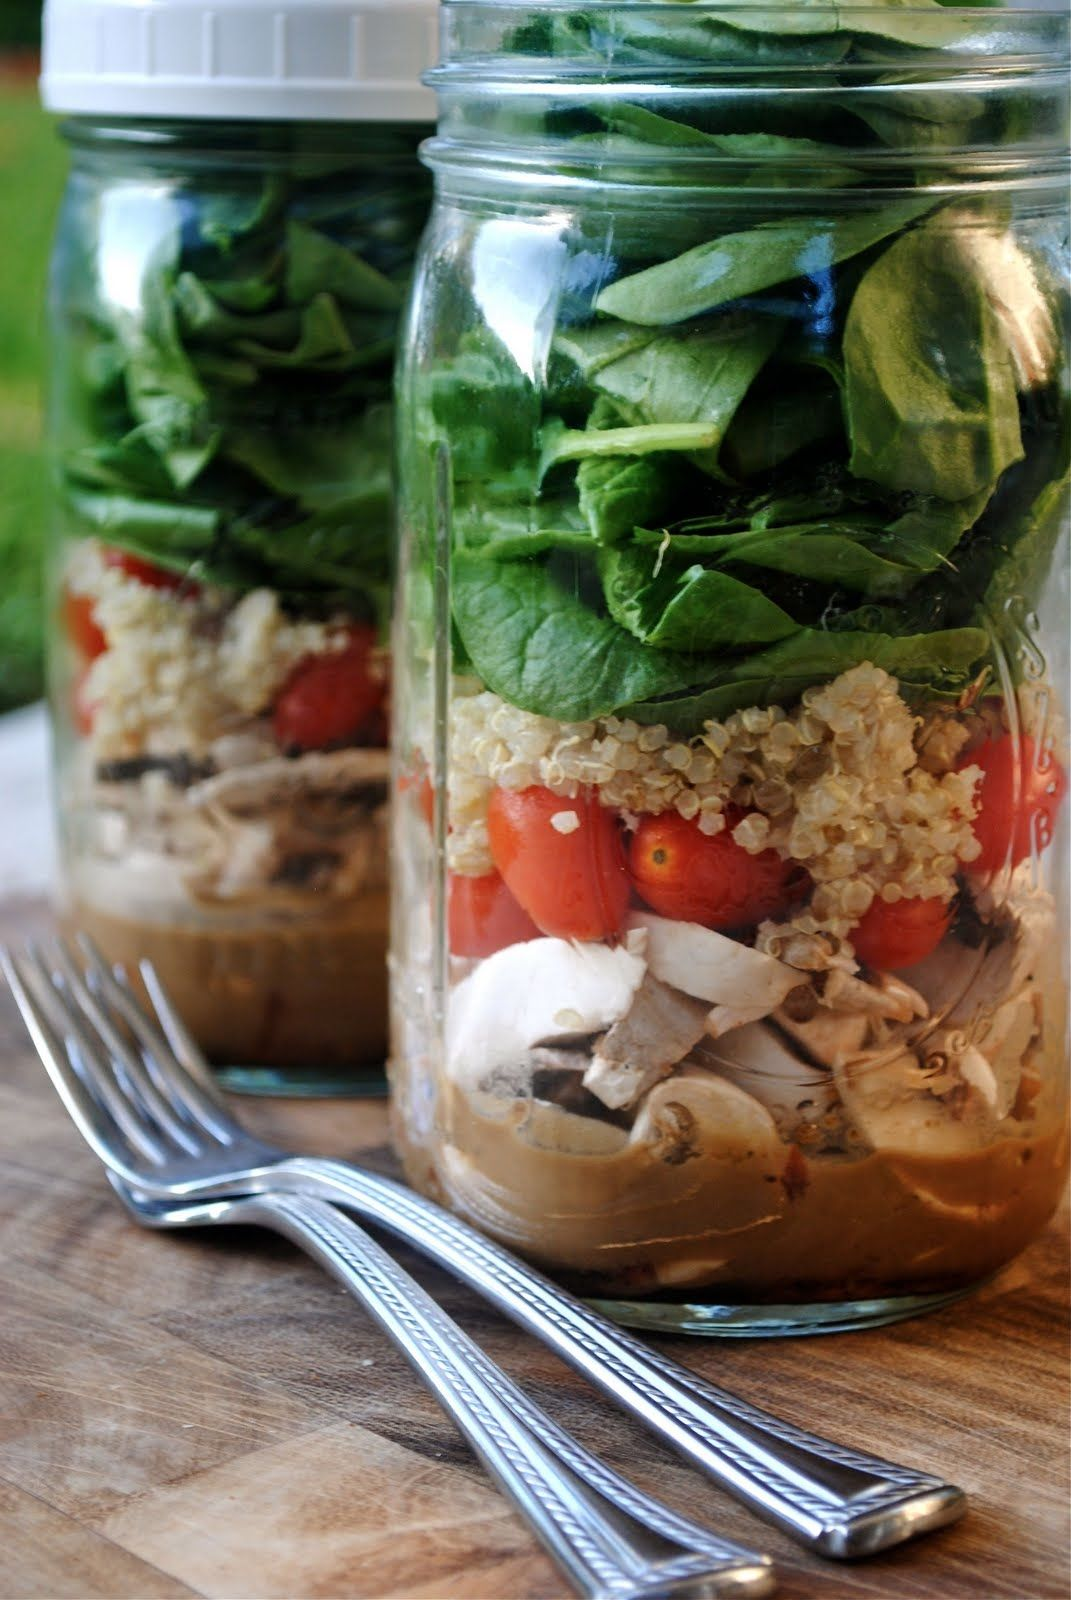 ~Salad in a Jar~ these salads can be made up to 4 days in advance and will stay fresh in the fridge with a lid on. This is one of my tricks to eating salad everyday for lunch at work. I make a few jars on Sunday night and just grab one to bring to work everyday. When you're ready to eat, just shake it up.